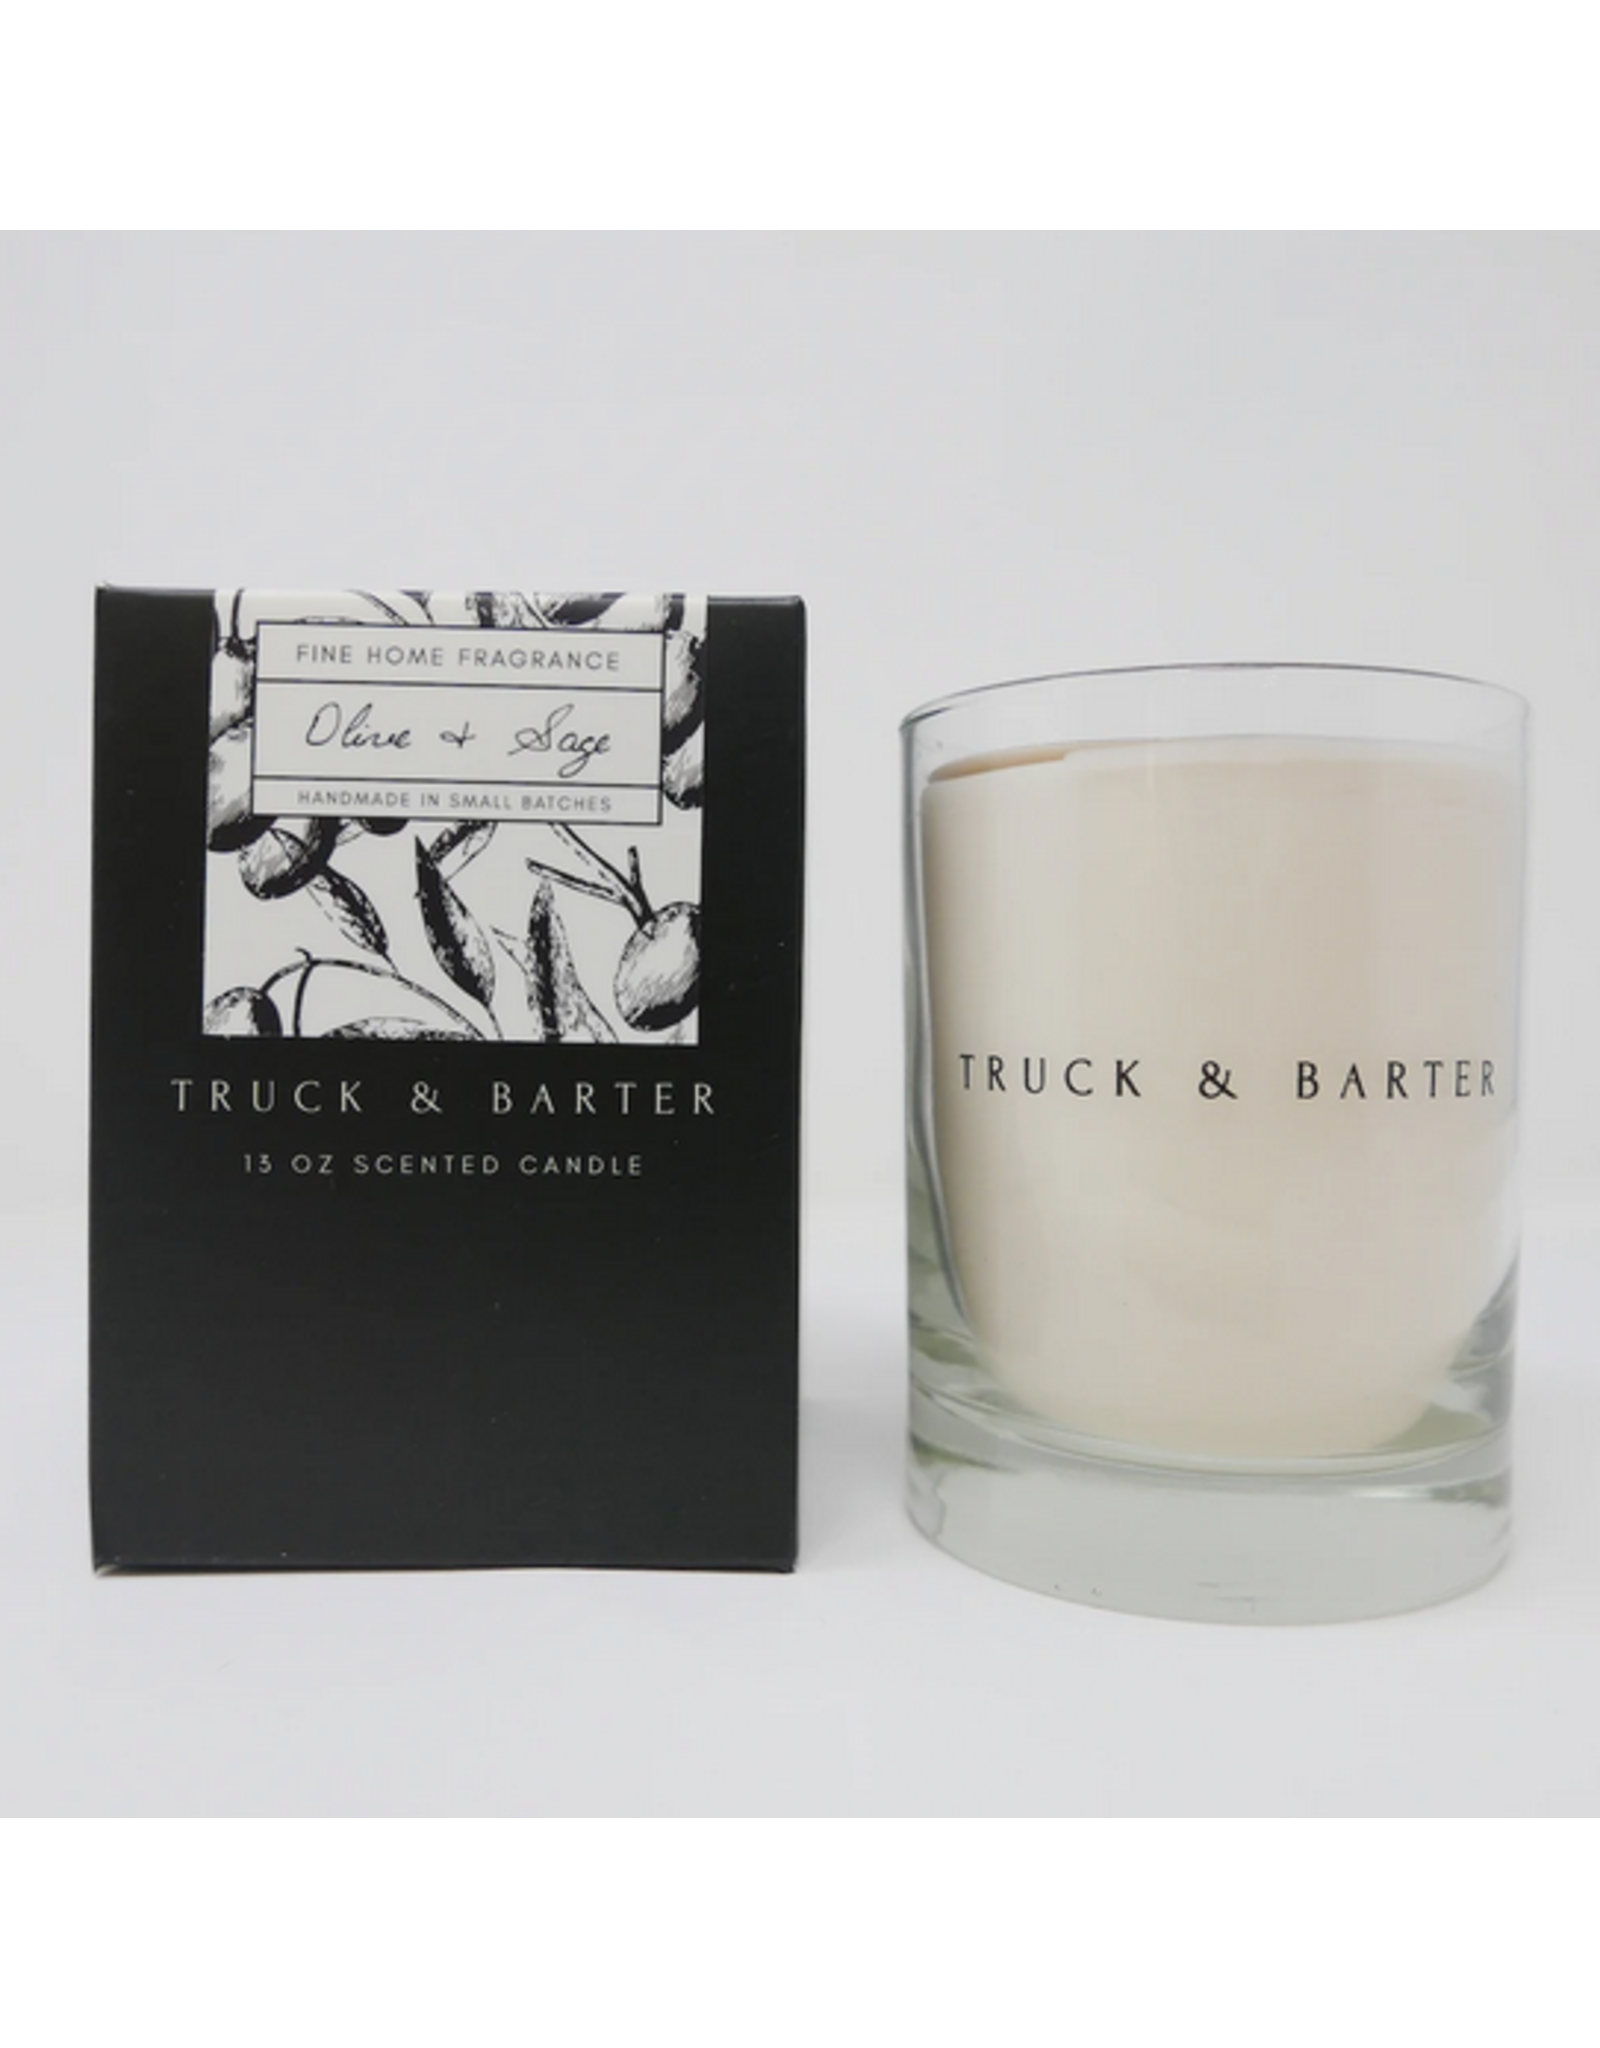 Truck & Barter Candle